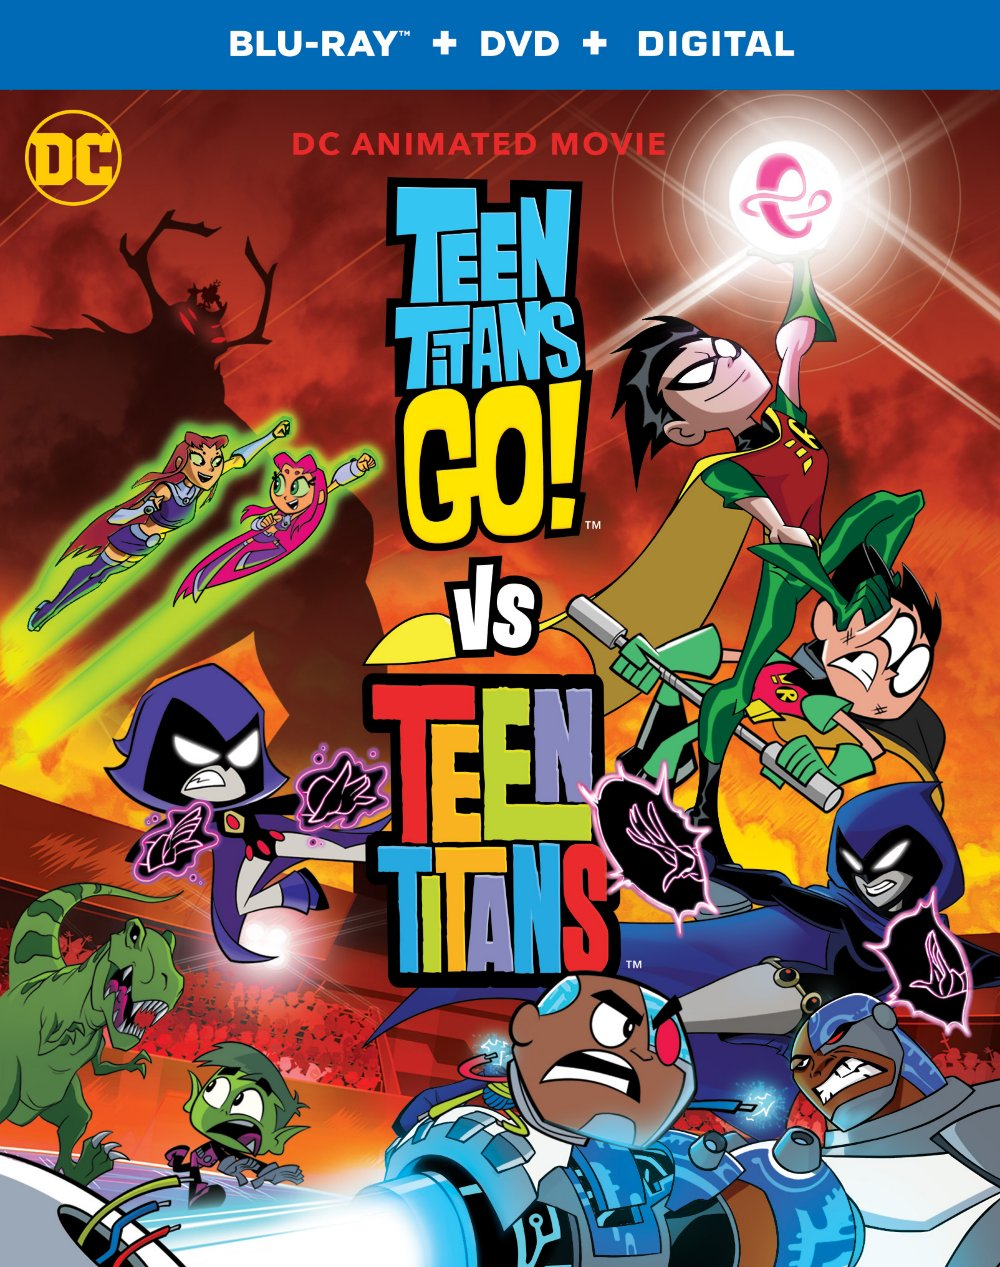 Teen Titans Go!VS Teen Titans DVD. Teen Titans Go! Vs. Teen Titansis now available to own on Digital, Blu-ray & DVD